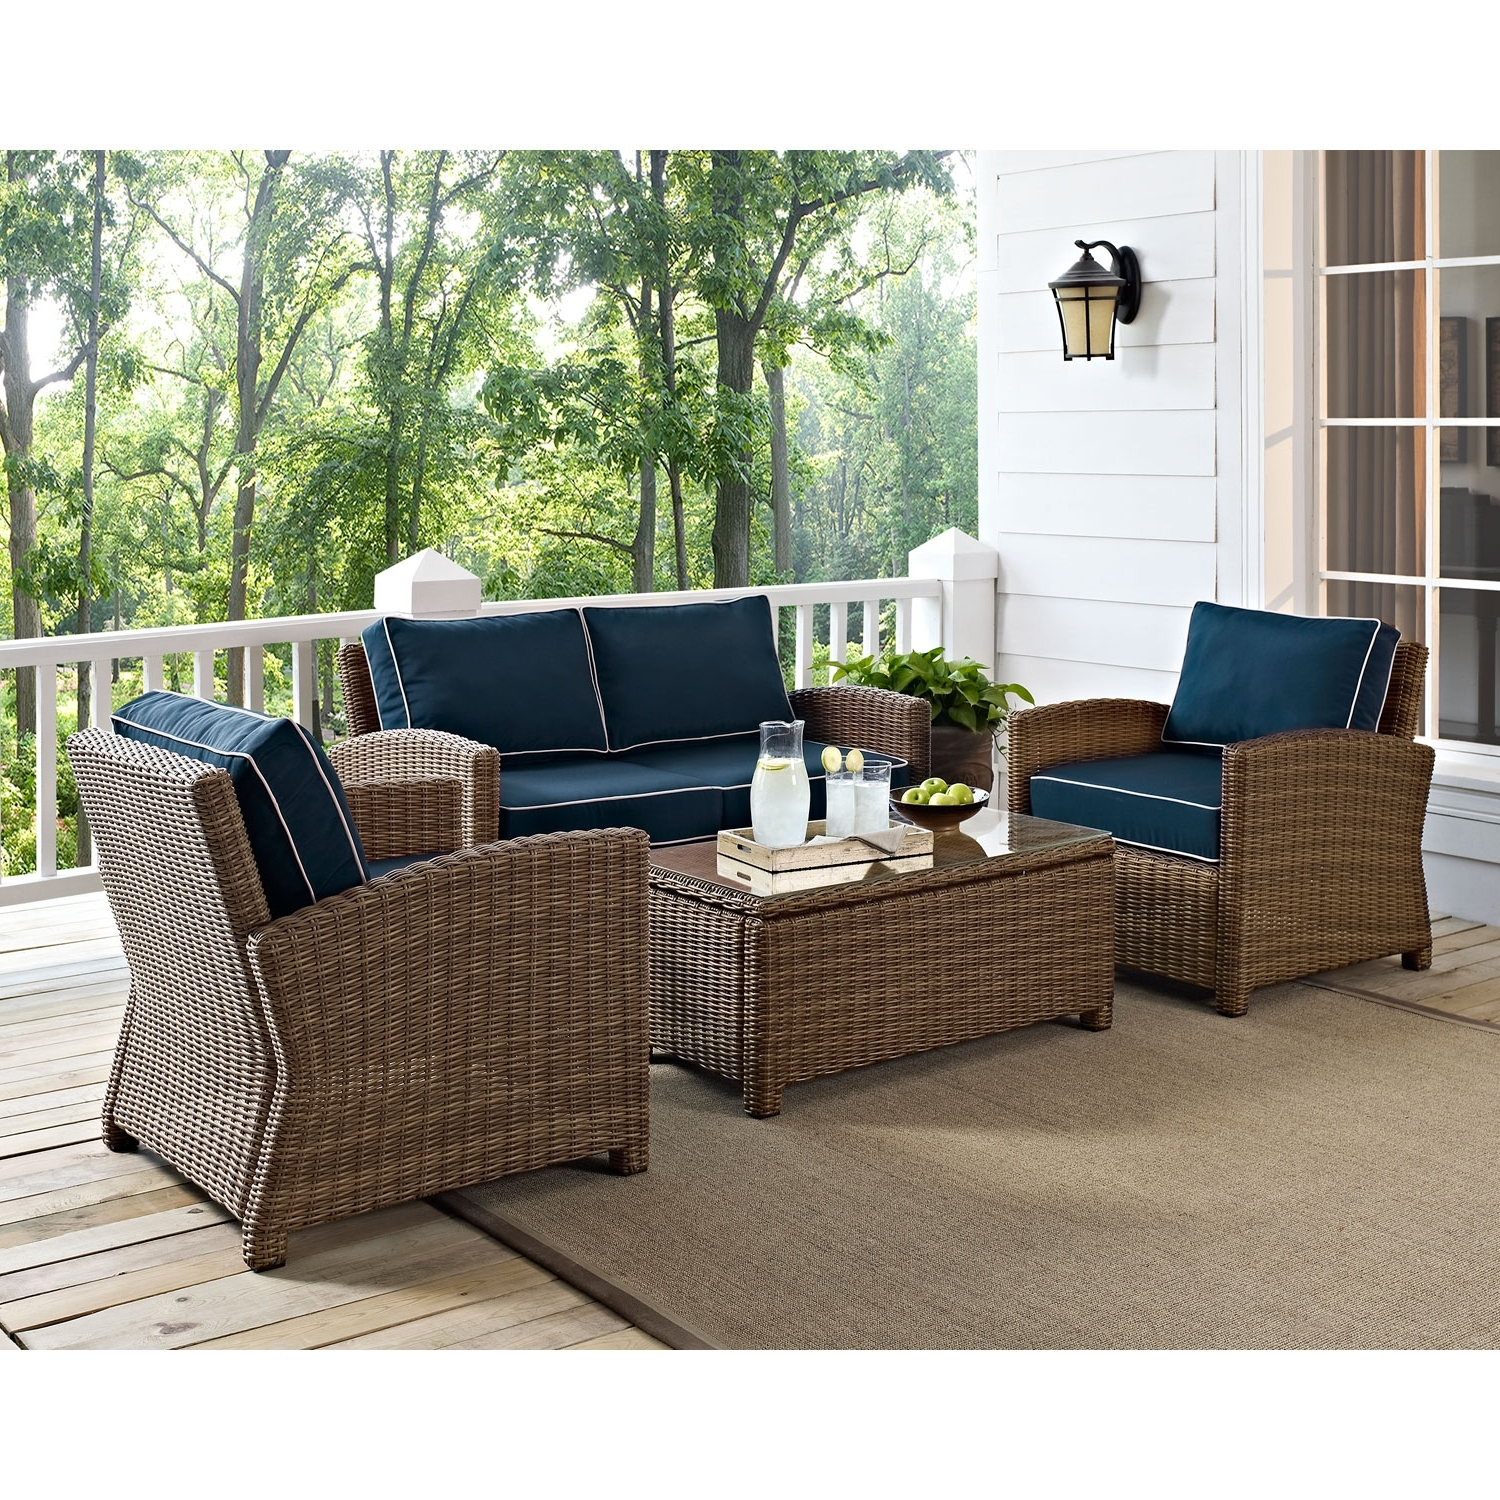 Patio Conversation Sets With Cushions In Most Recently Released Crosley Furniture Bradenton 4 Piece Outdoor Wicker Seating Set With Navy  Cushions (View 11 of 20)